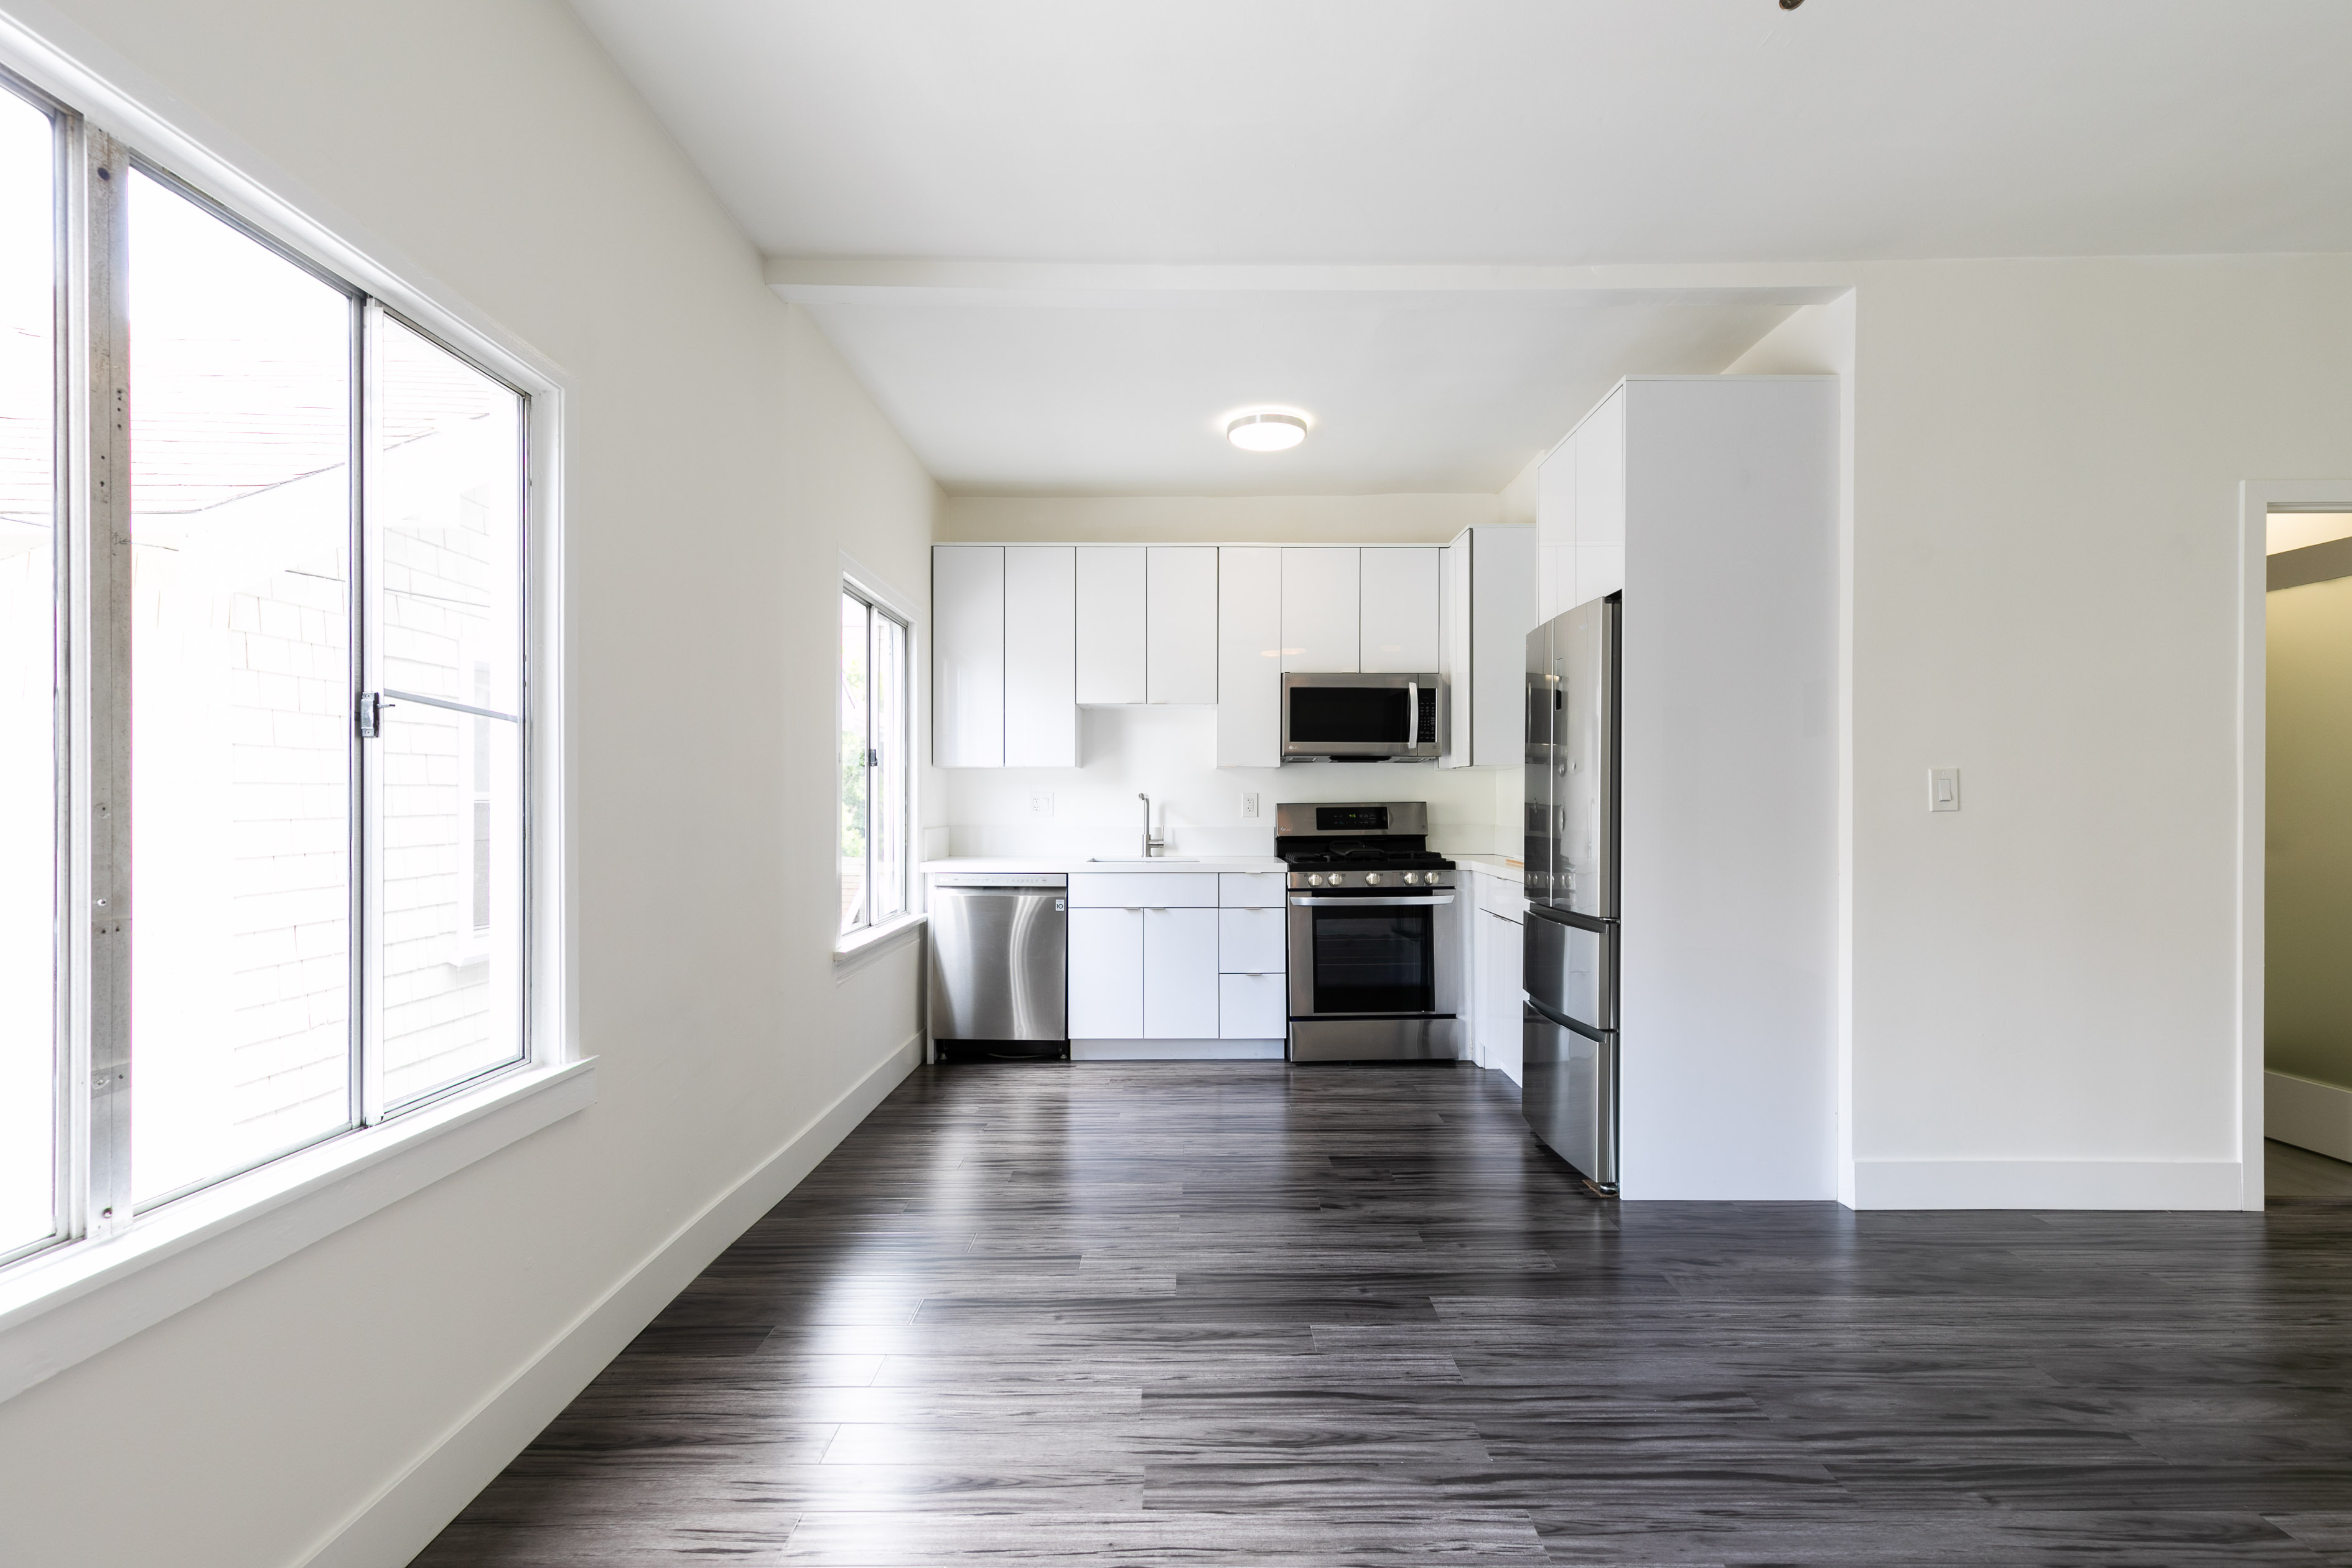 Modern 1 Bed In K-town   AC Unit Included   Short Trip To All Your Ktown Faves   Move In Special!